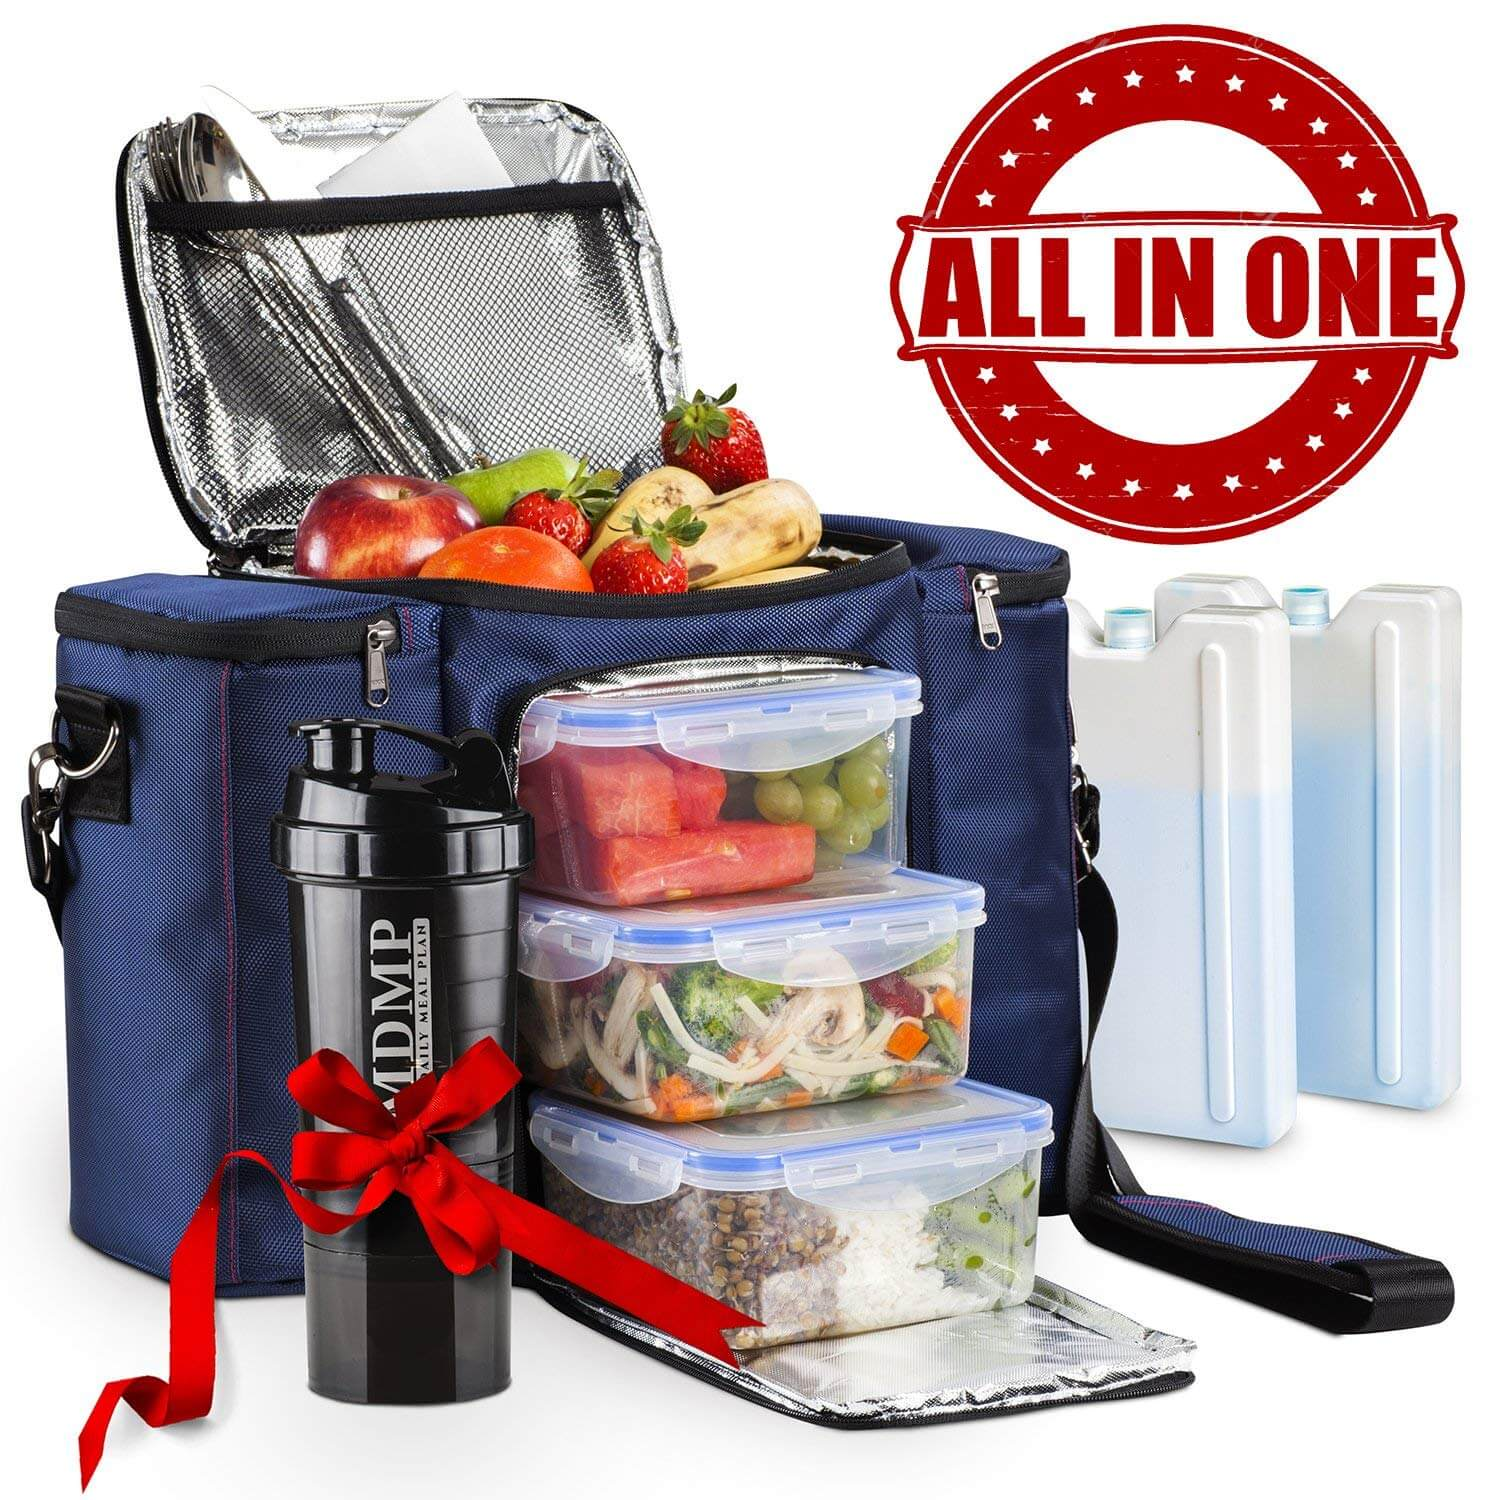 MDMP - My Daily Meal Plan Meal Prep Lunch Bag